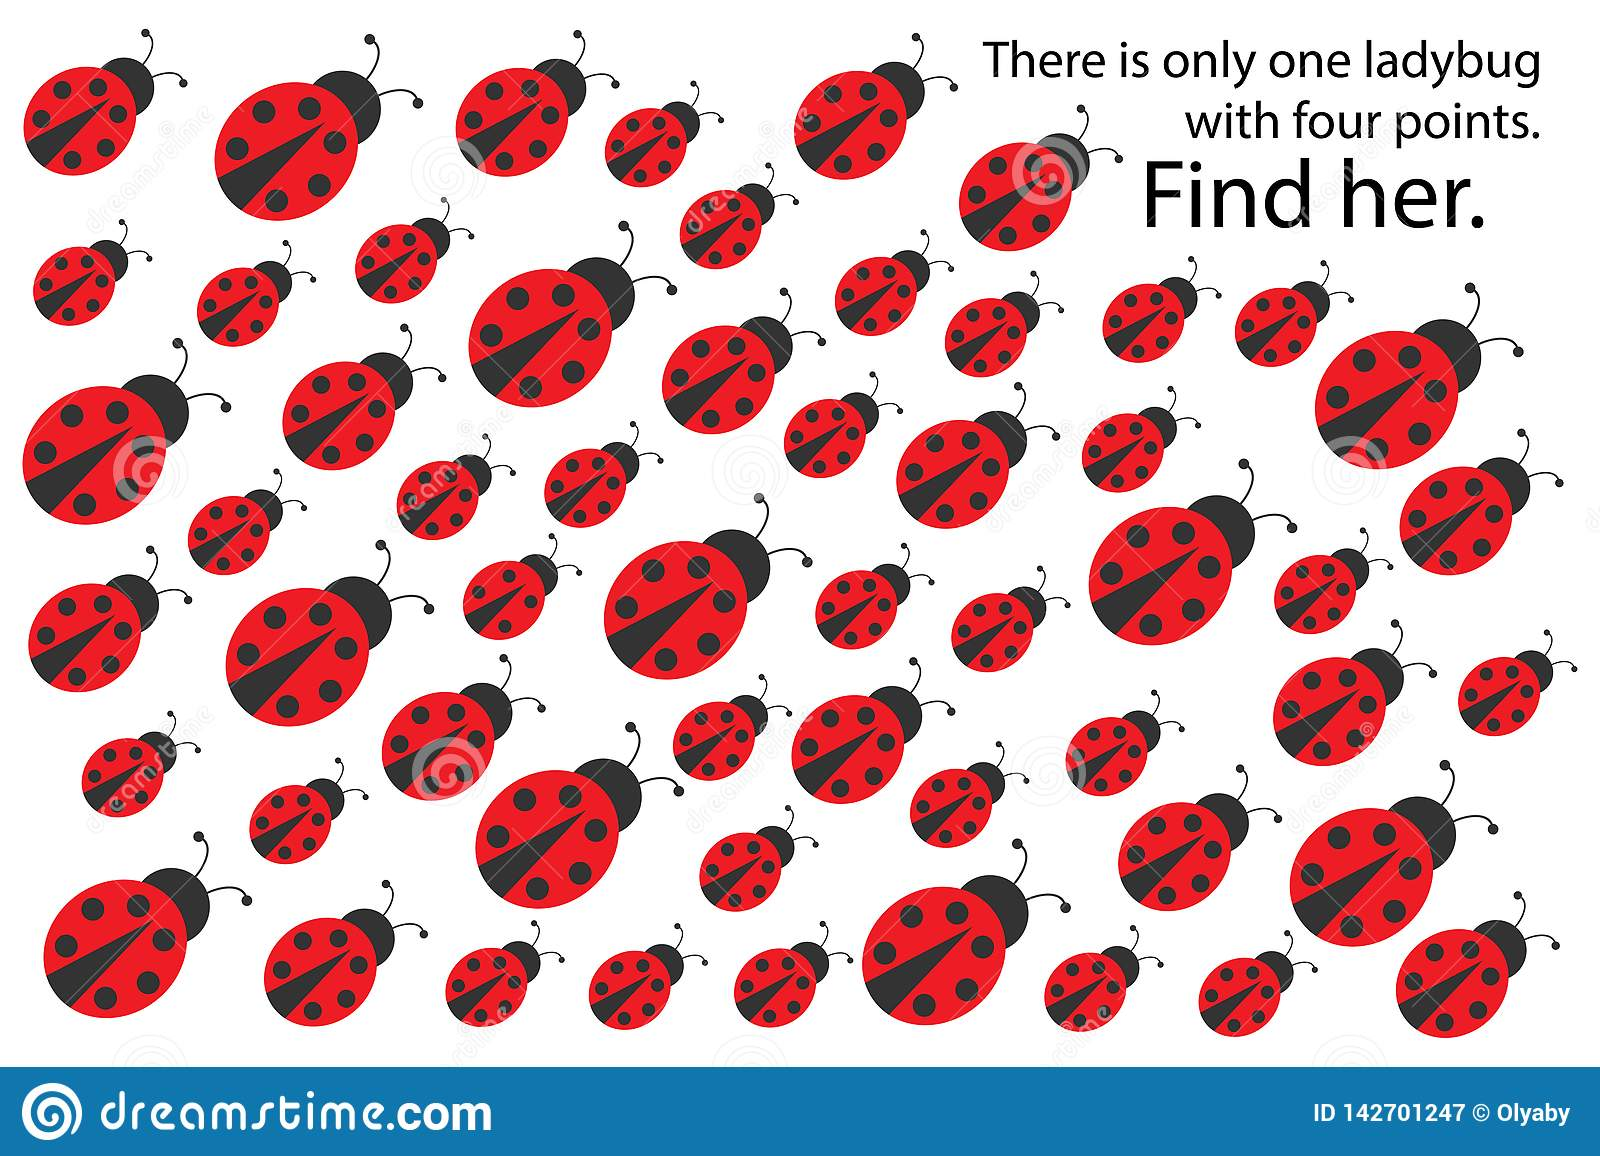 Find Ladybug With 4 Spots Spring Fun Education Puzzle